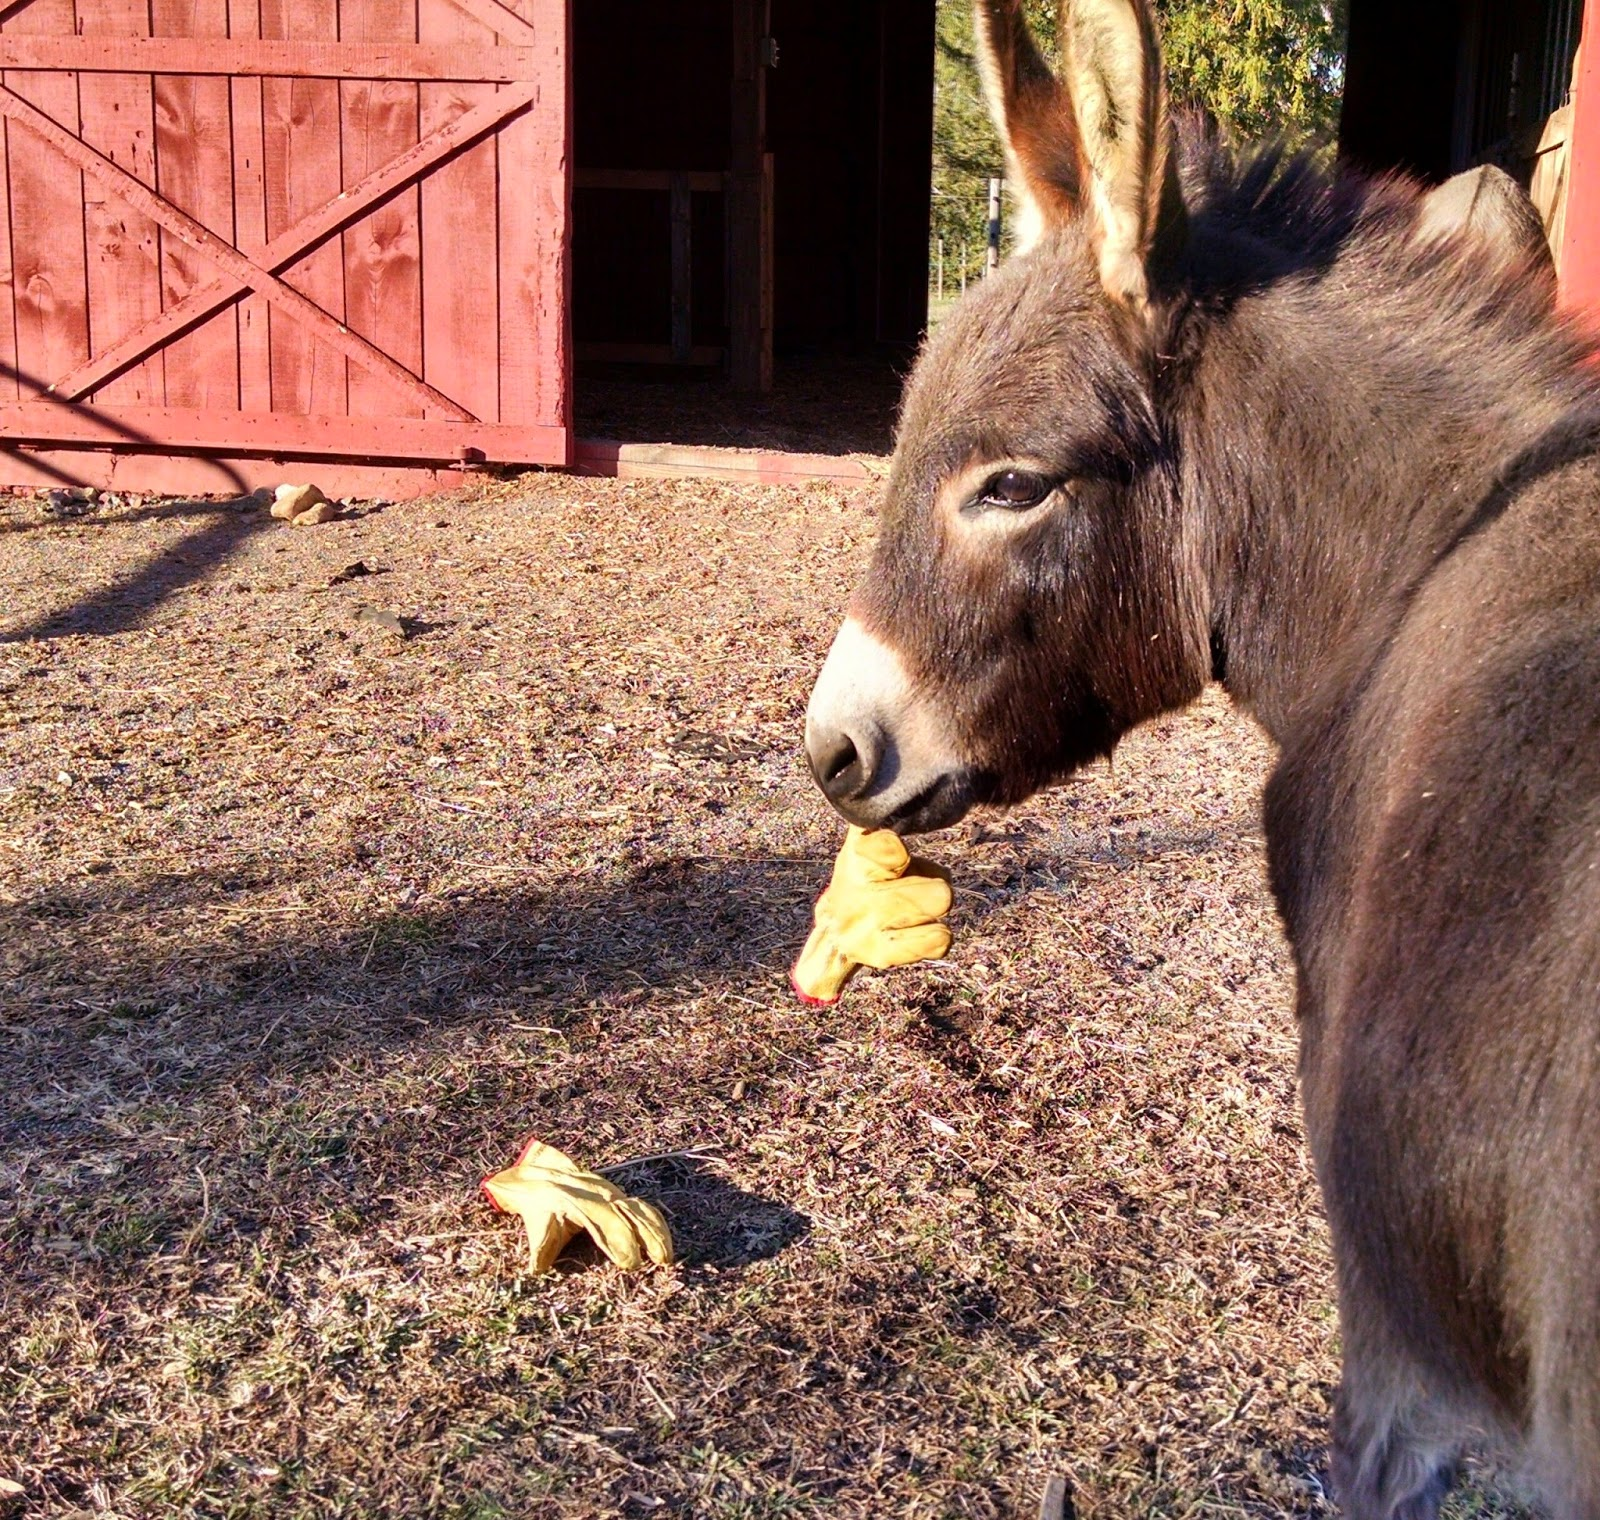 miniature donkey with glove in his mouth